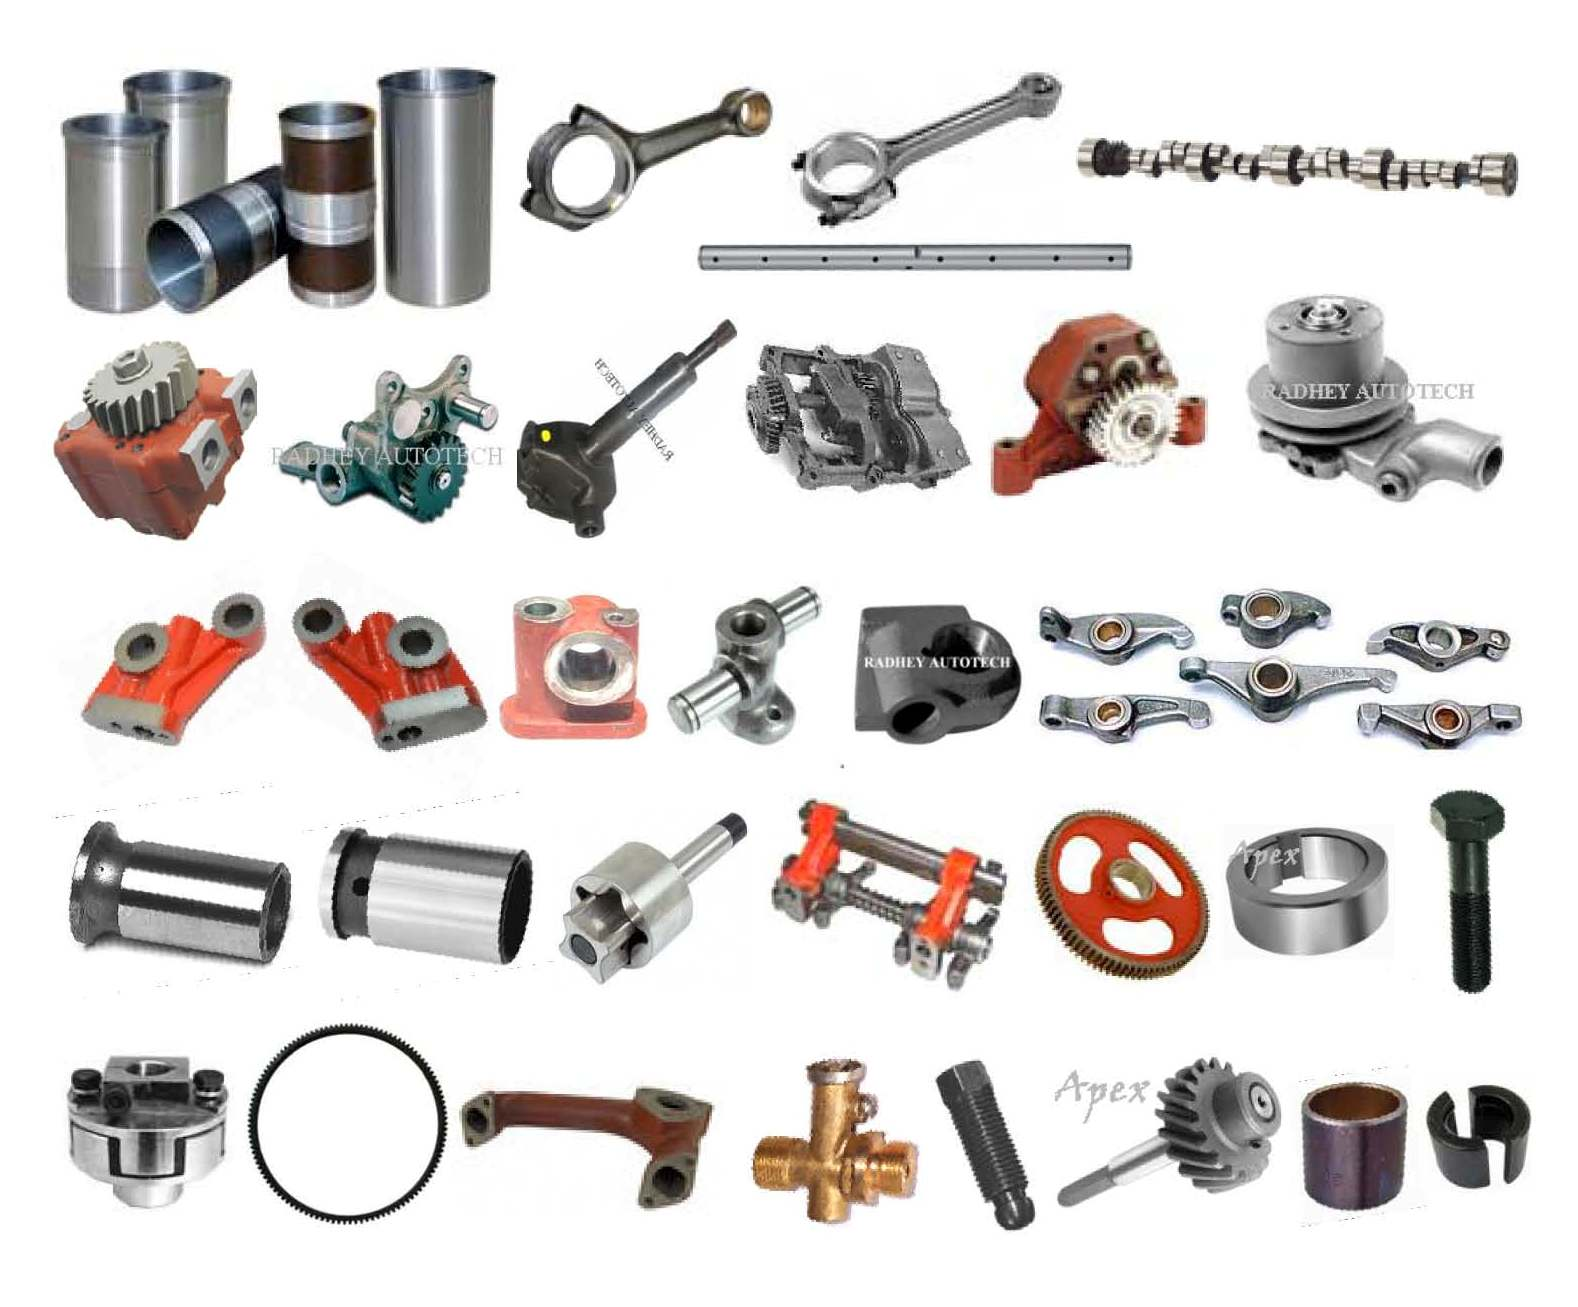 Tractor Engine Parts : Massey ferguson tractor spare parts